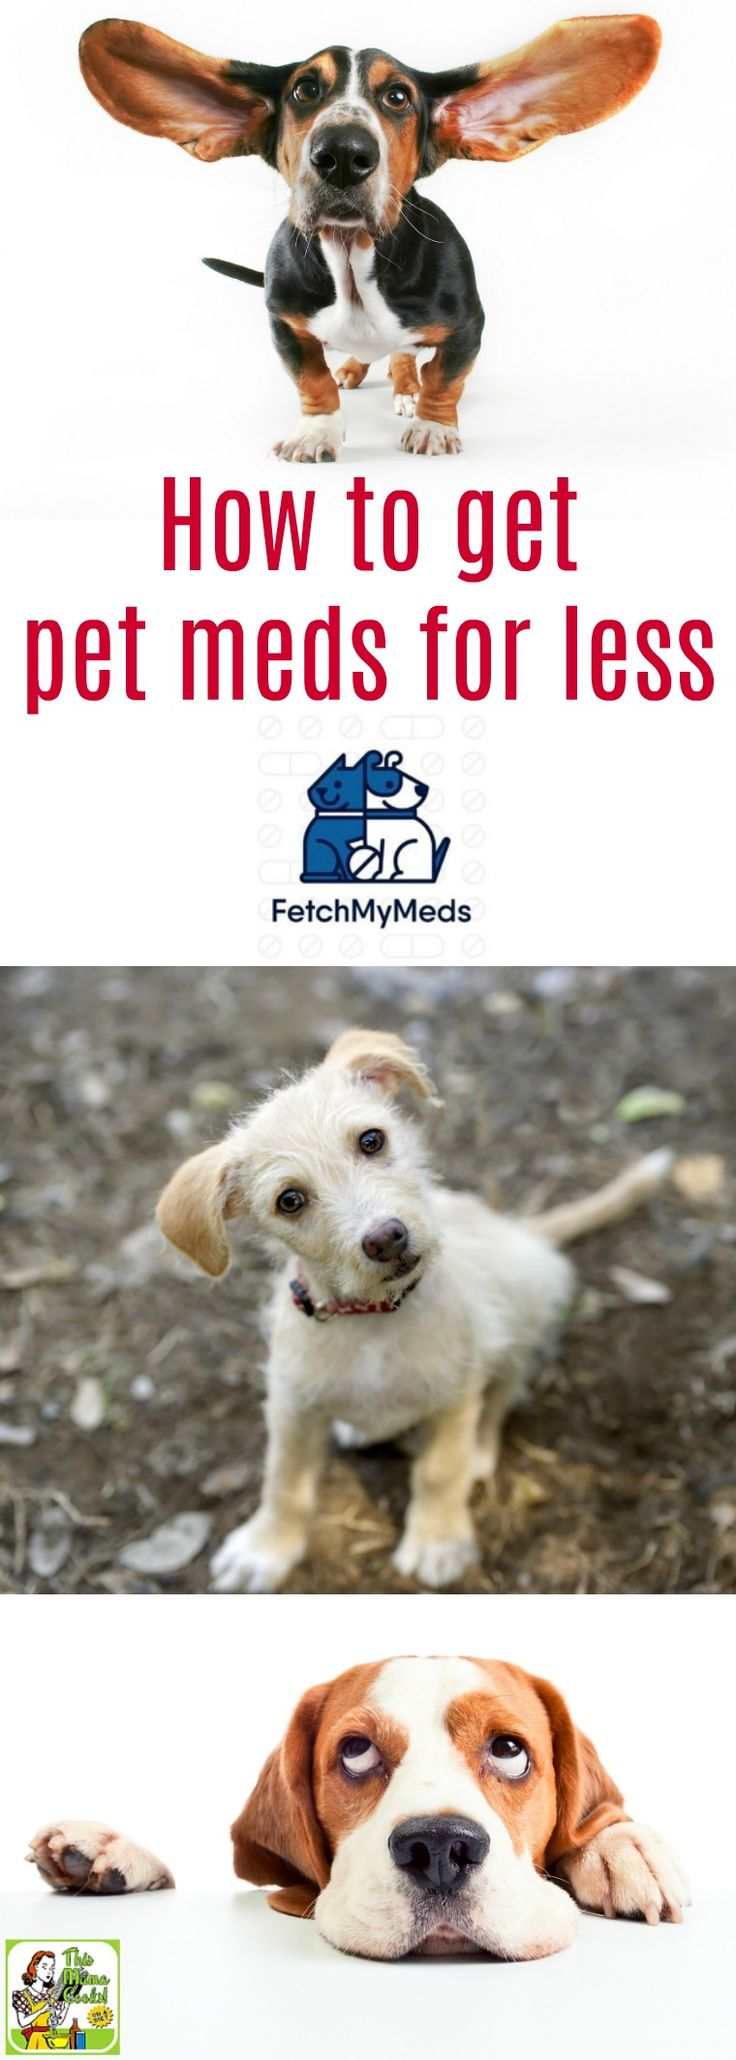 Want to know how to get pet meds for less? Click to learn how Fetch My Meds pet prescription discount card can help you save on pet meds at participating pharmacies like CVS, Walgreens, Walmart, Rite-Aid, Sam's Club and Costco in your local area. You can also use this free online vet med card to help you save on online pet meds at Pet360.com. It's free and easy to use and takes only a couple of minutes to sign up. #ad #fetchmymeds @fetchmymeds